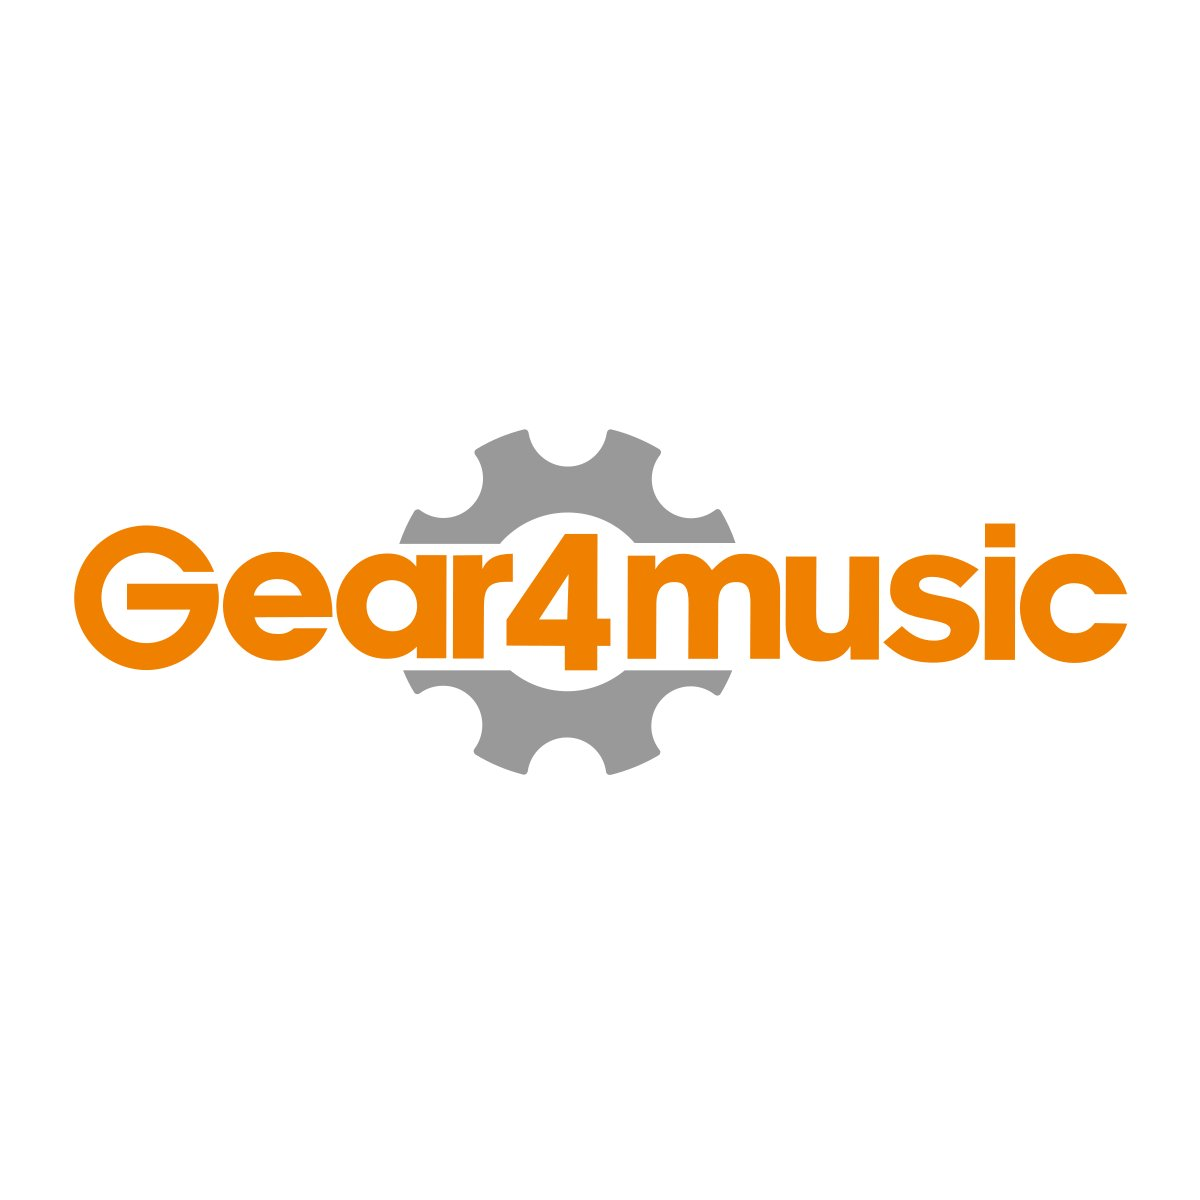 Student 3/4 Violin by Gear4music